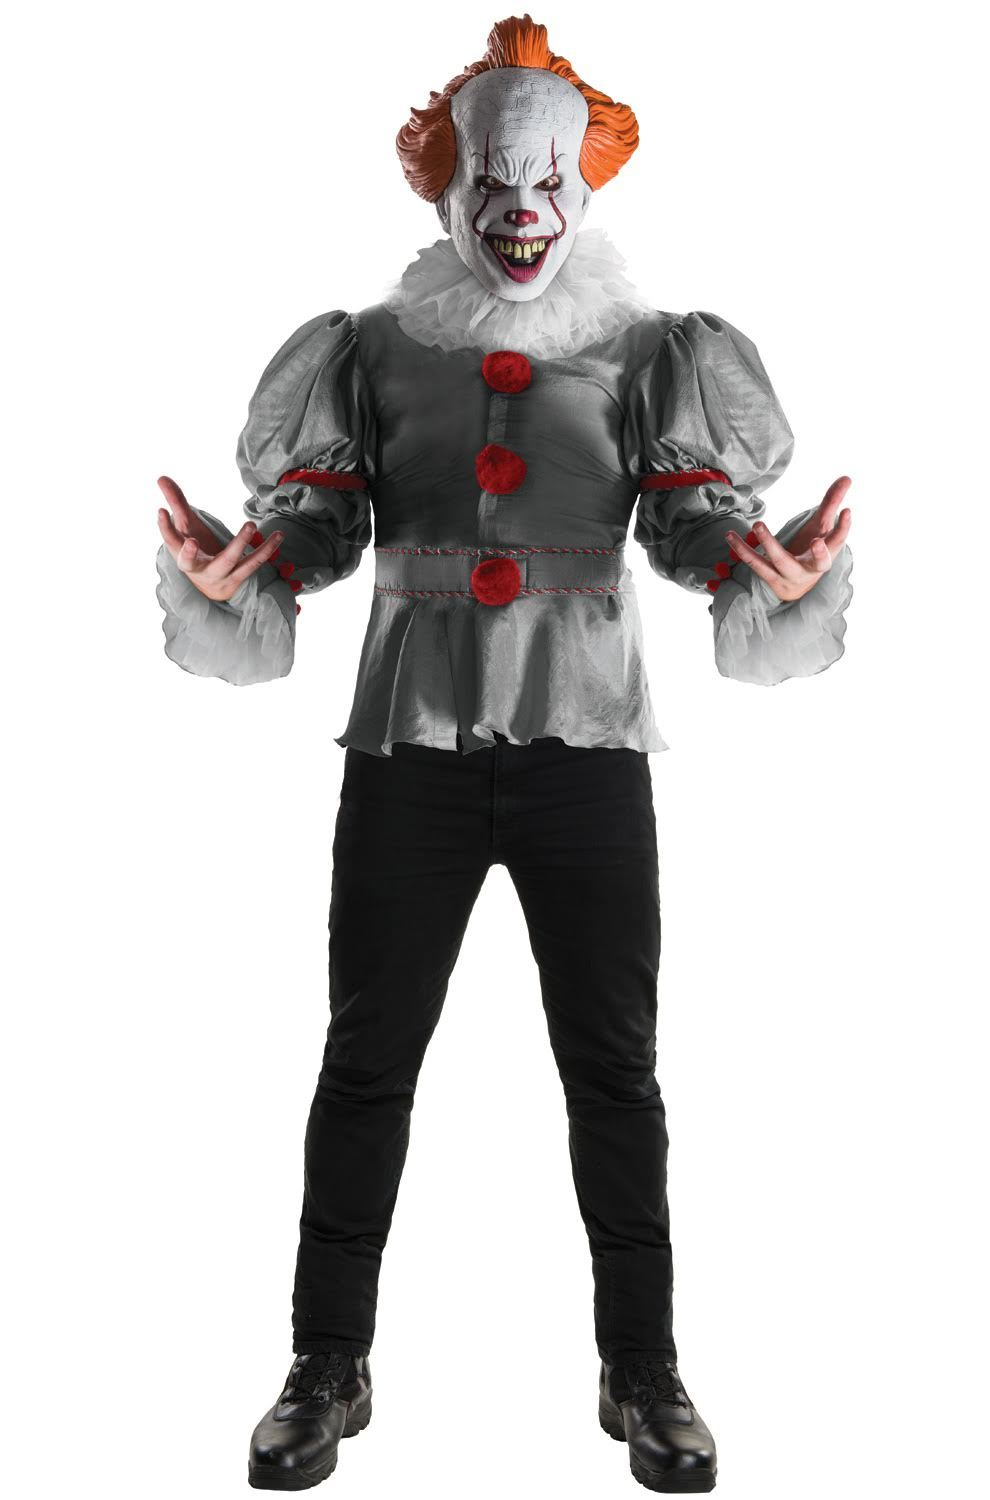 IT - Pennywise Costume (Size Standard) image